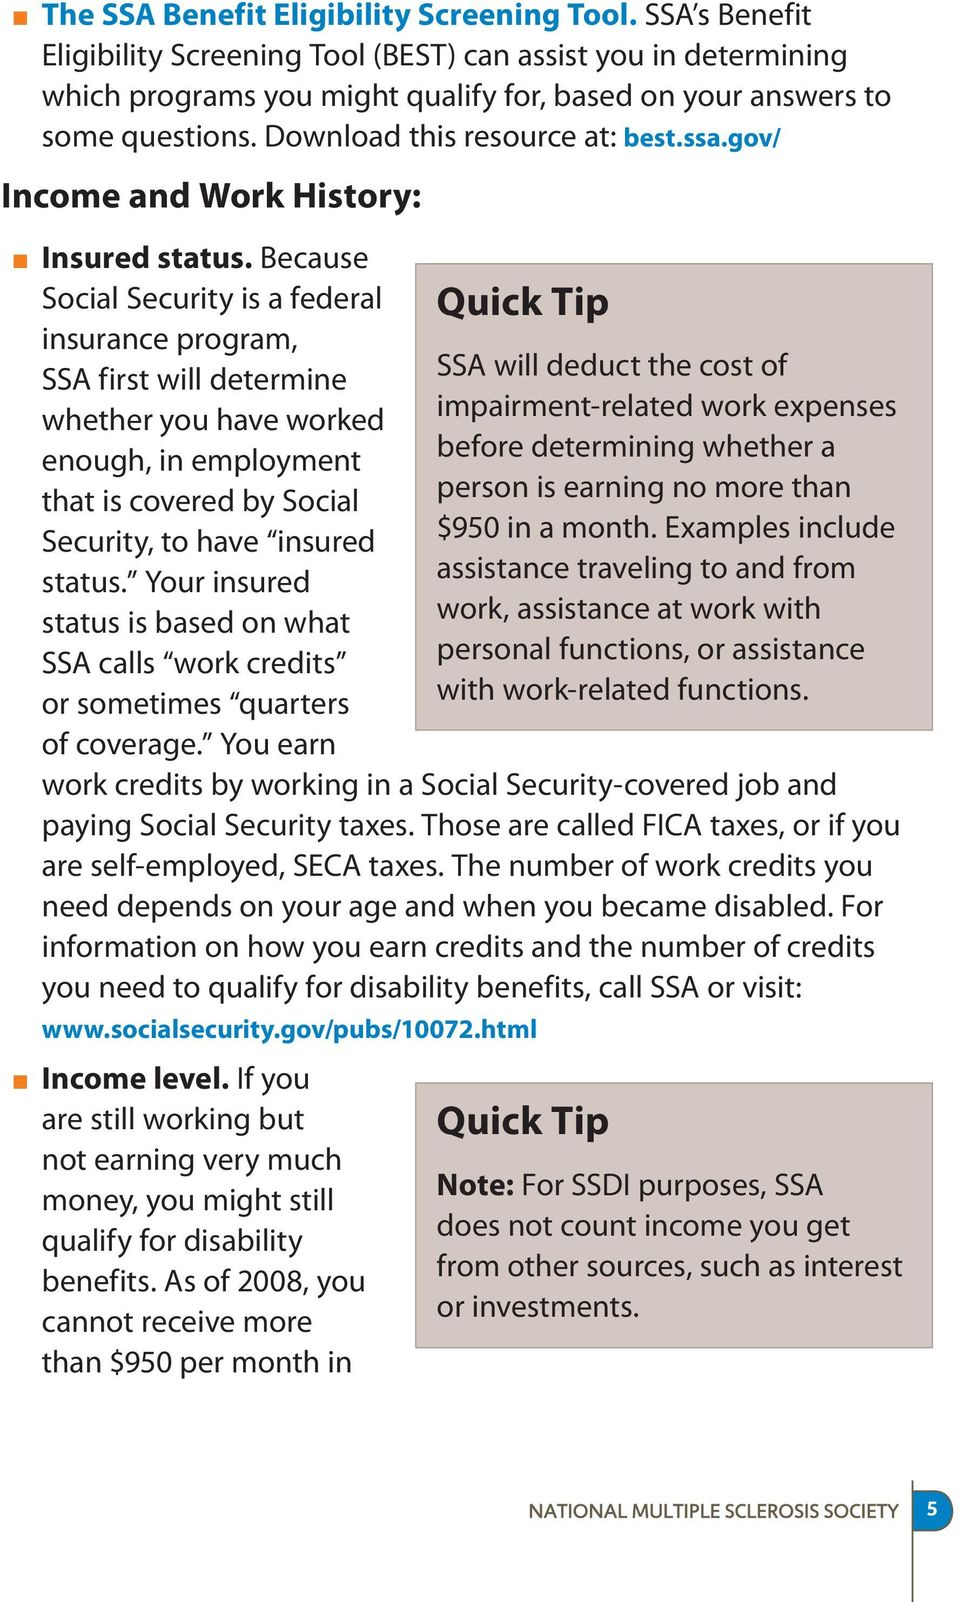 Because Social Security is a federal insurance program, SSA first will determine whether you have worked enough, in employment that is covered by Social Security, to have insured status.